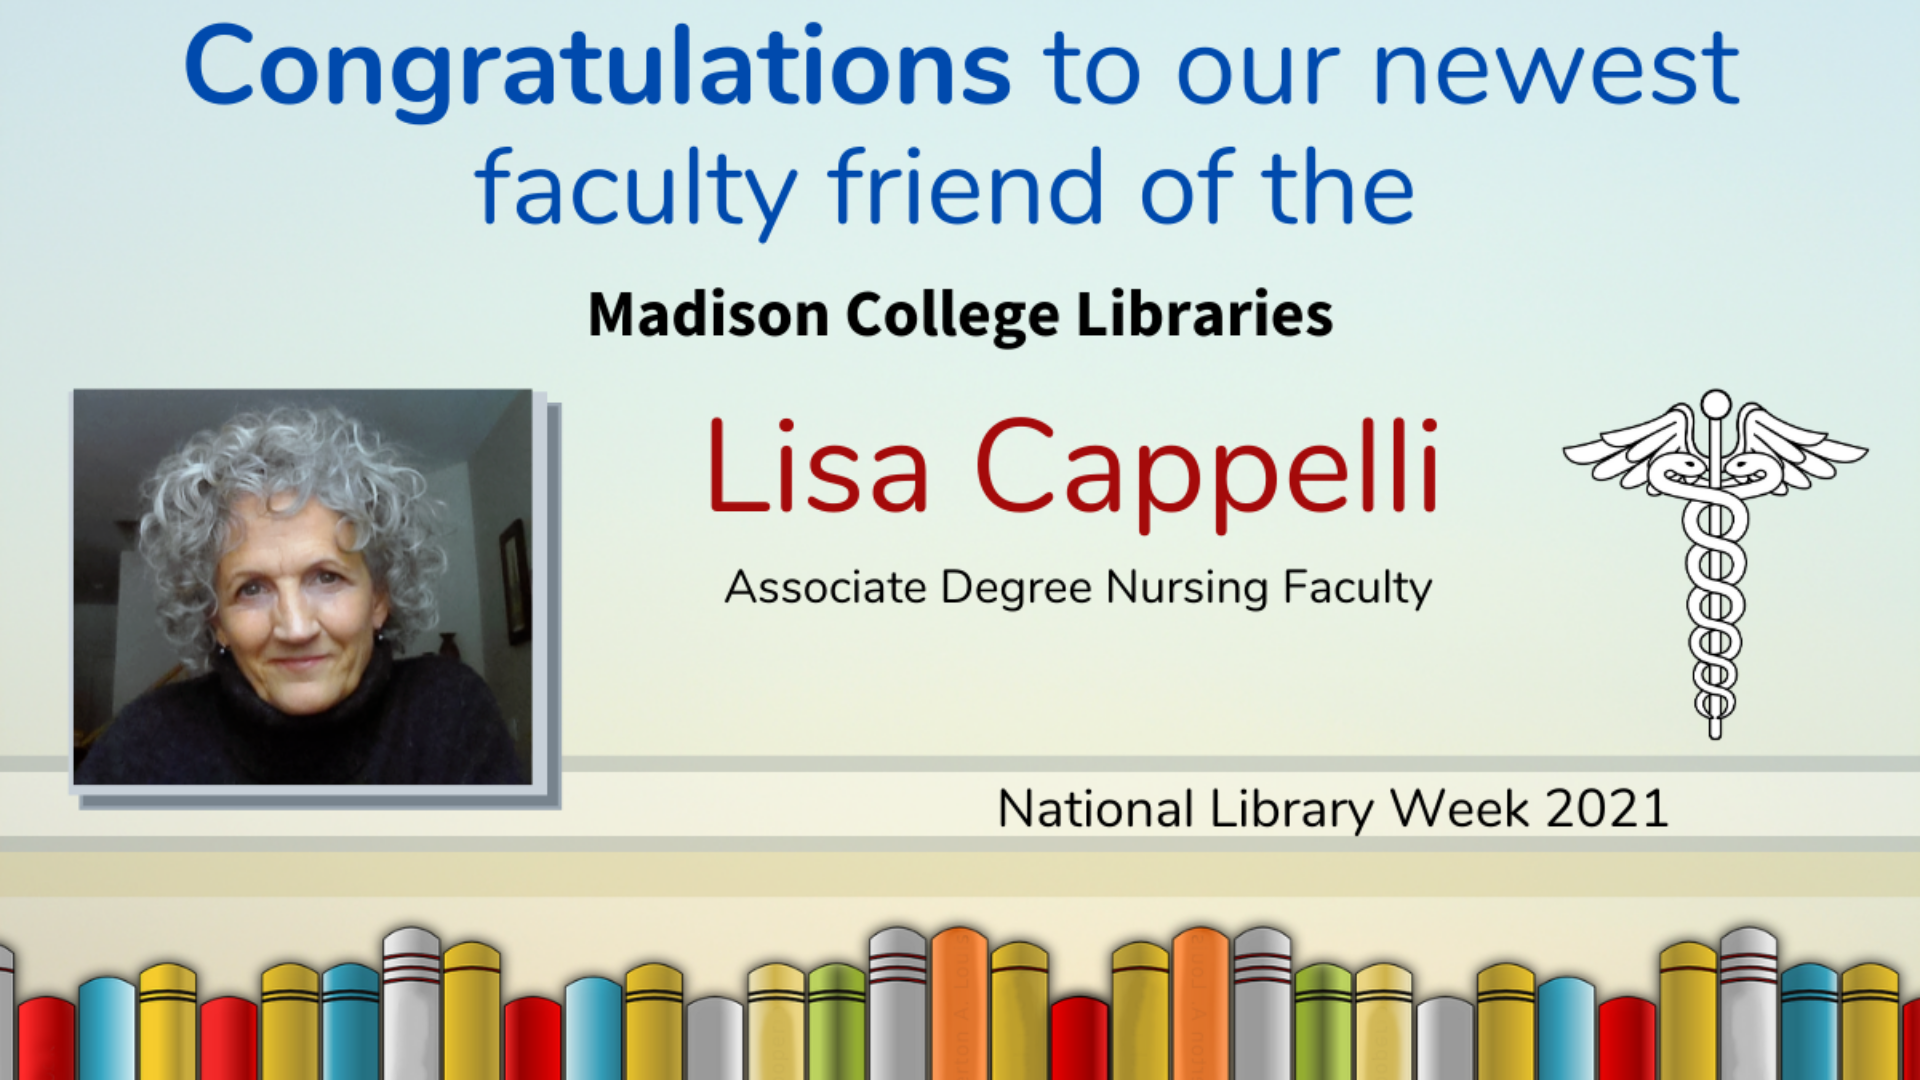 Faculty Friend Lisa Cappelli